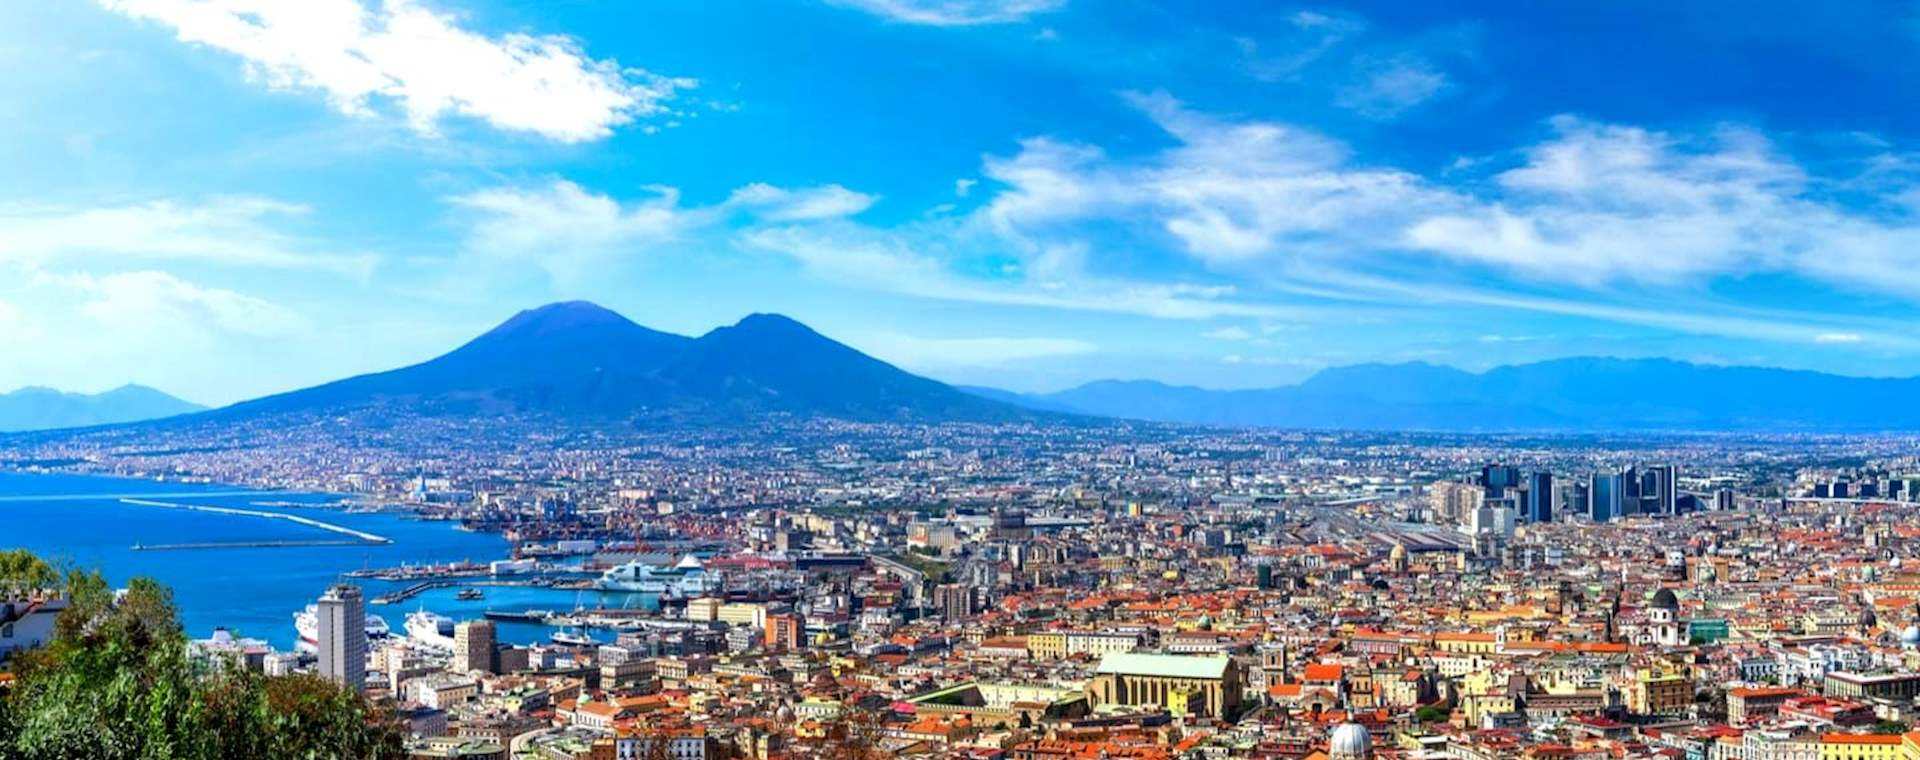 Best of Naples from Sorrento